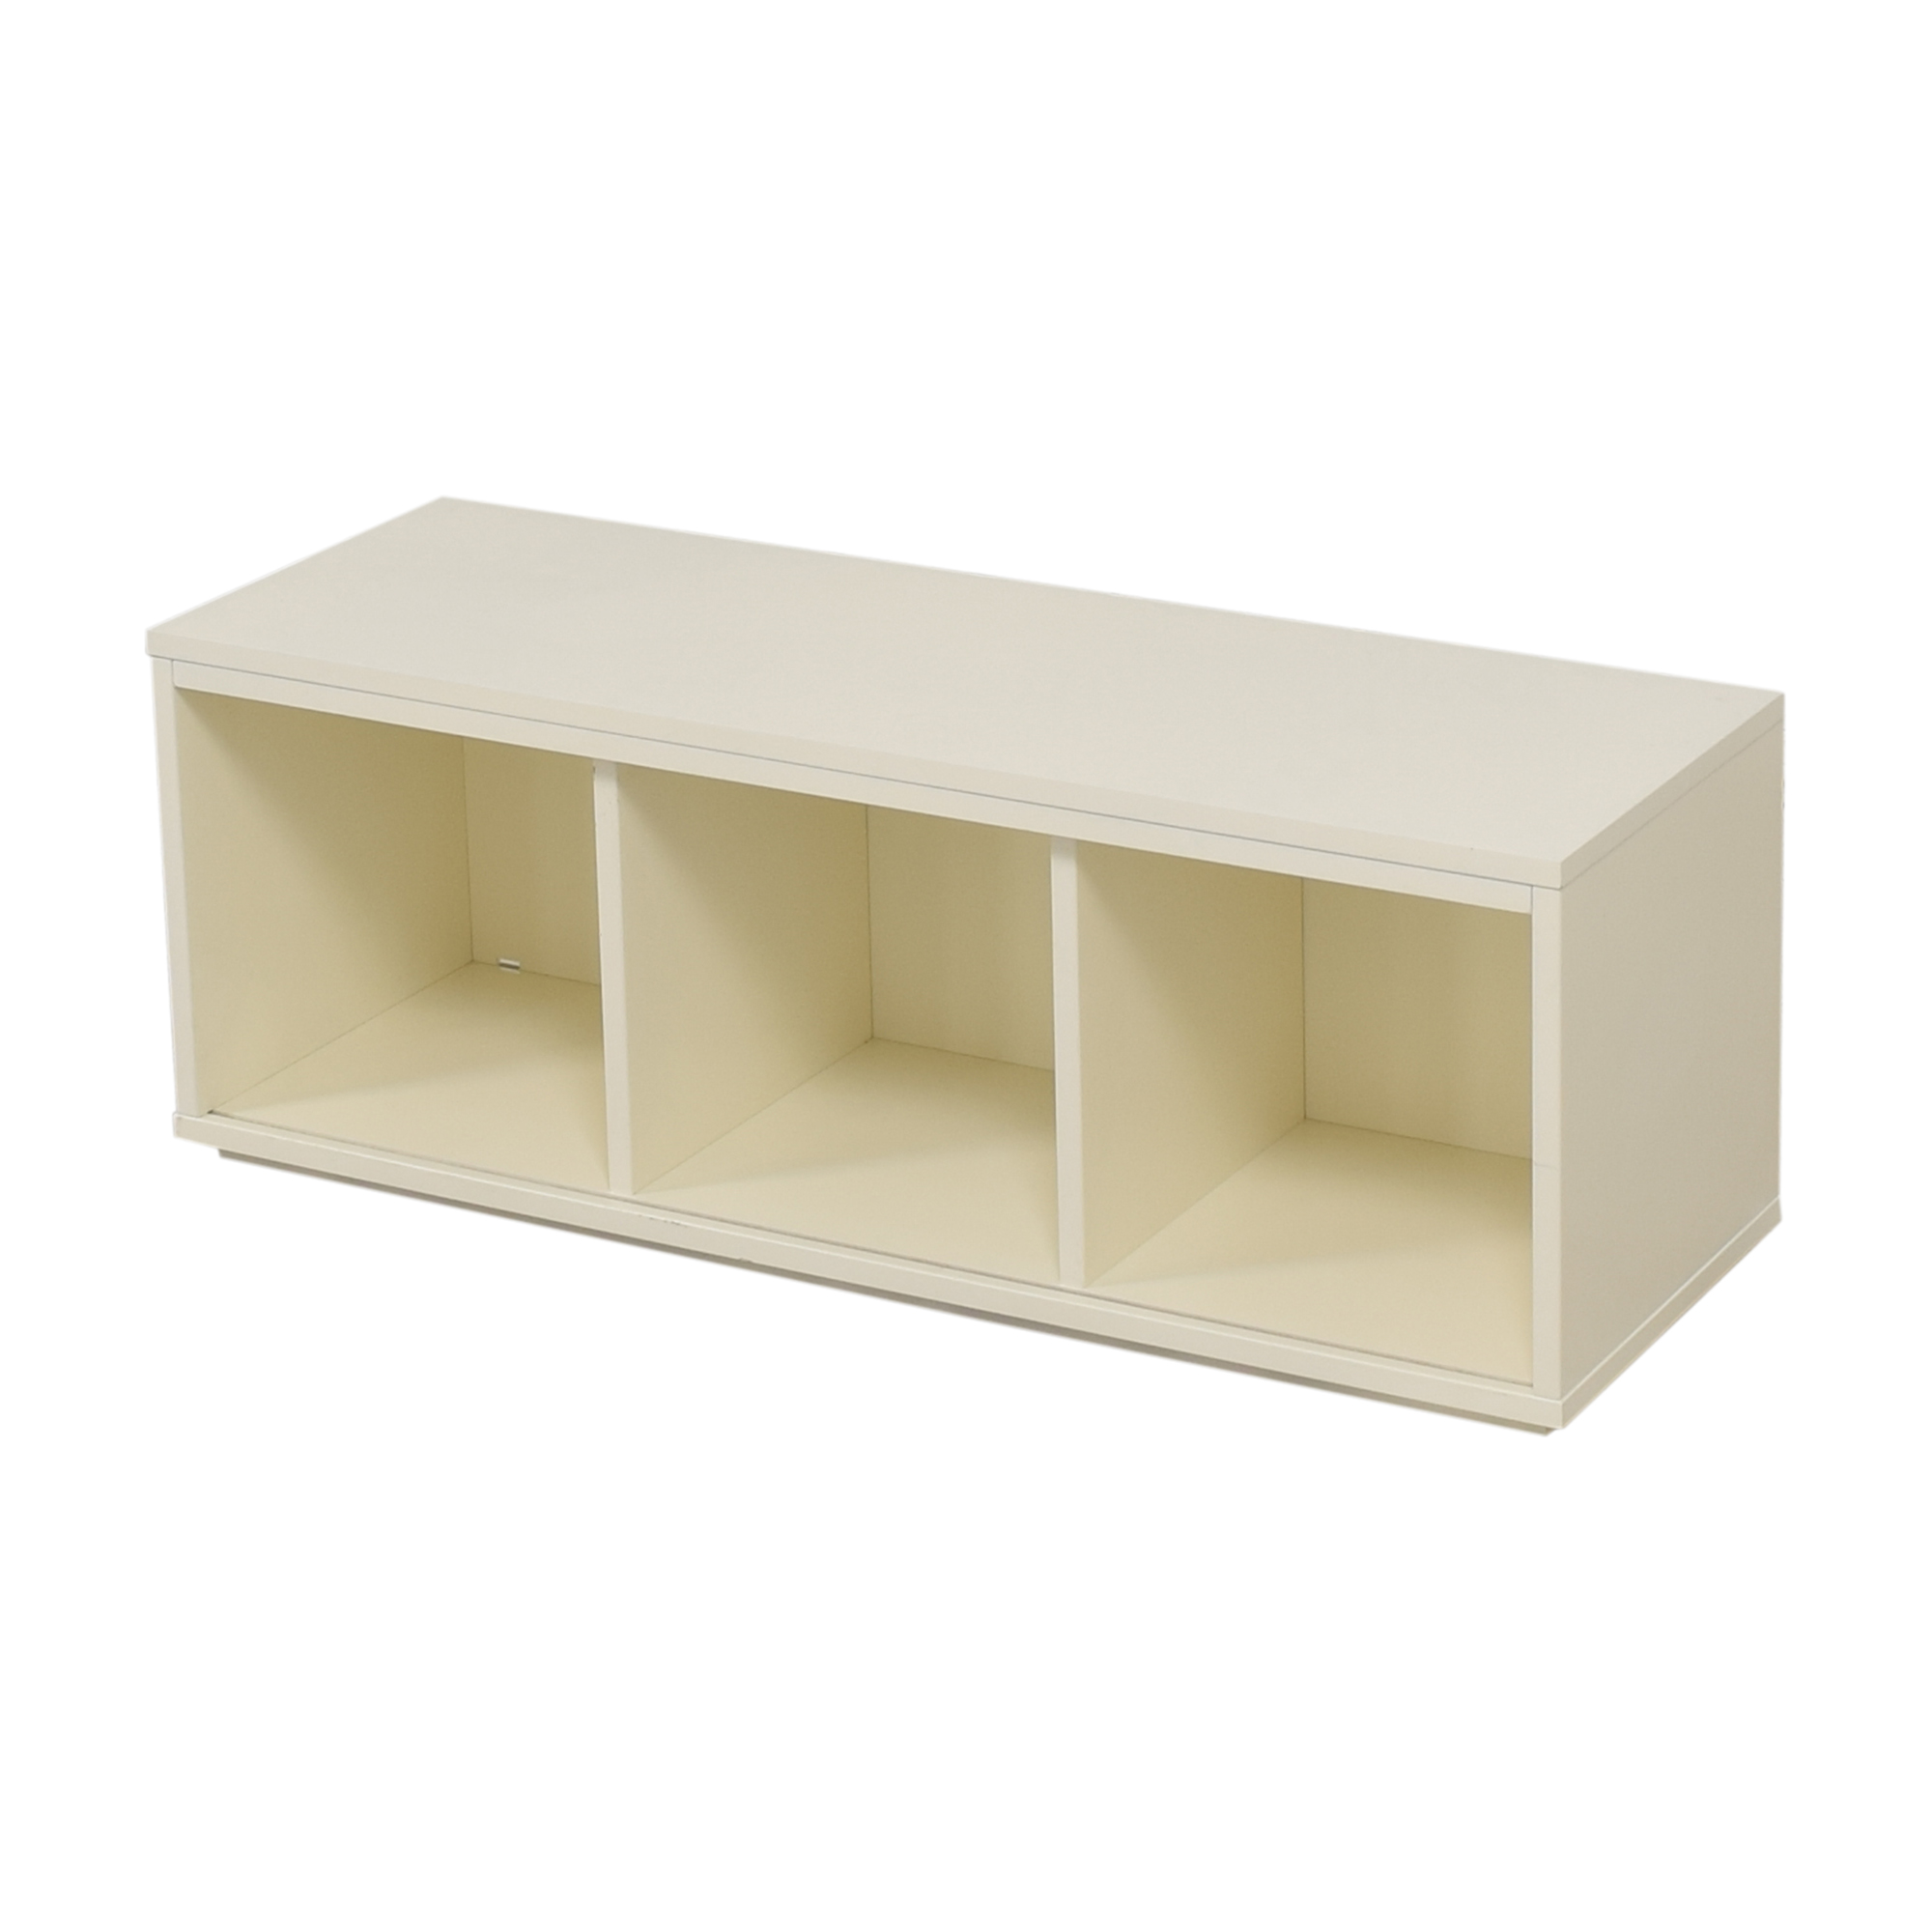 Crate & Barrel Crate & Barrel District Three-Cube Stackable Bookcase price